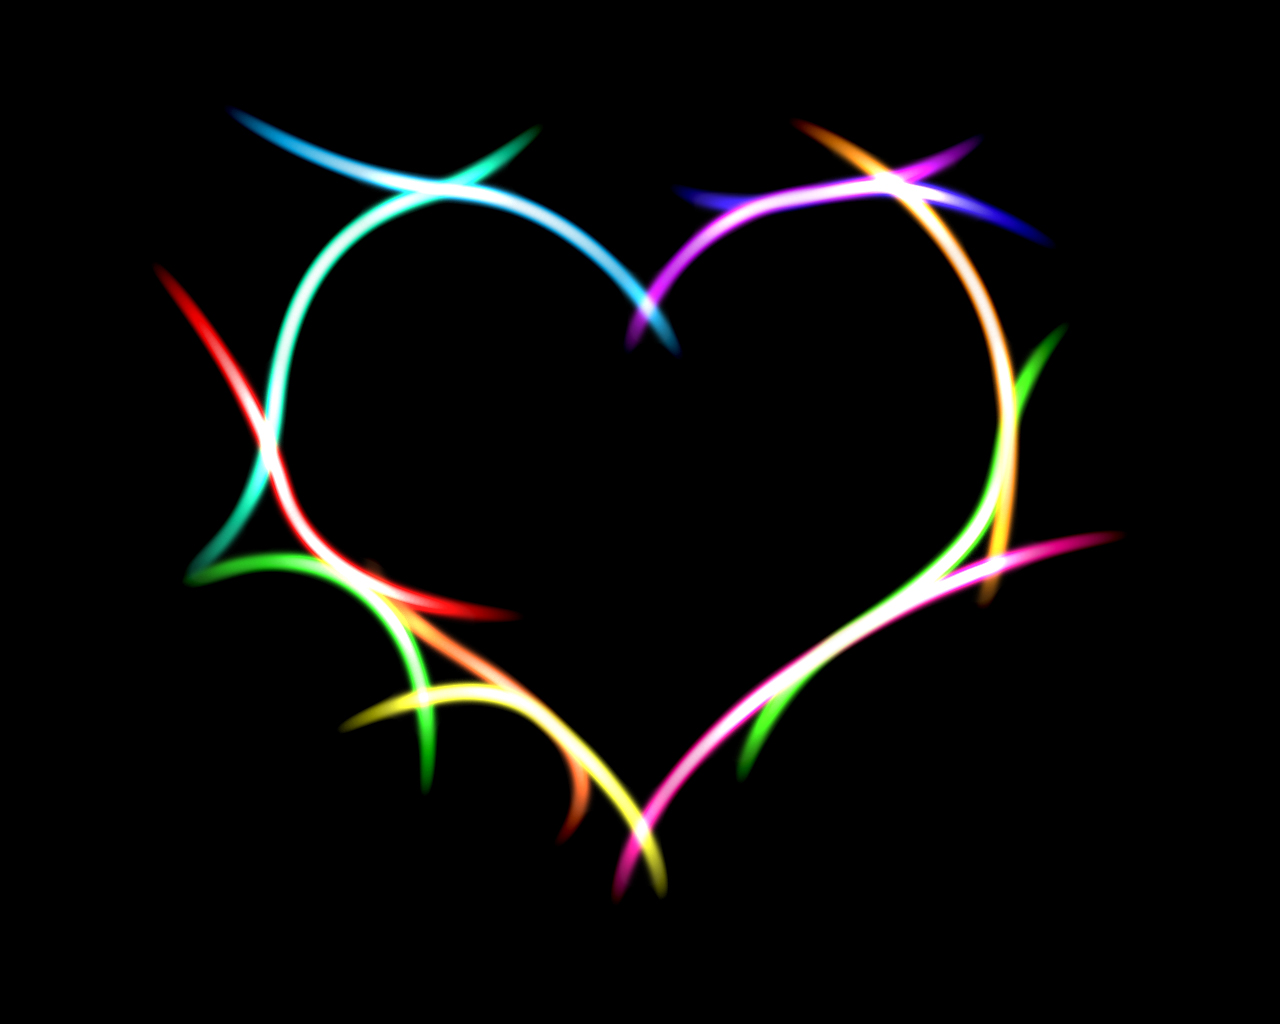 http://4.bp.blogspot.com/-JLUt5cZelfE/TeakDjceH9I/AAAAAAAAAF8/tOsV5lFUYQ0/s1600/Colorized%2BHeart-love-hearts-wallpapers.jpeg